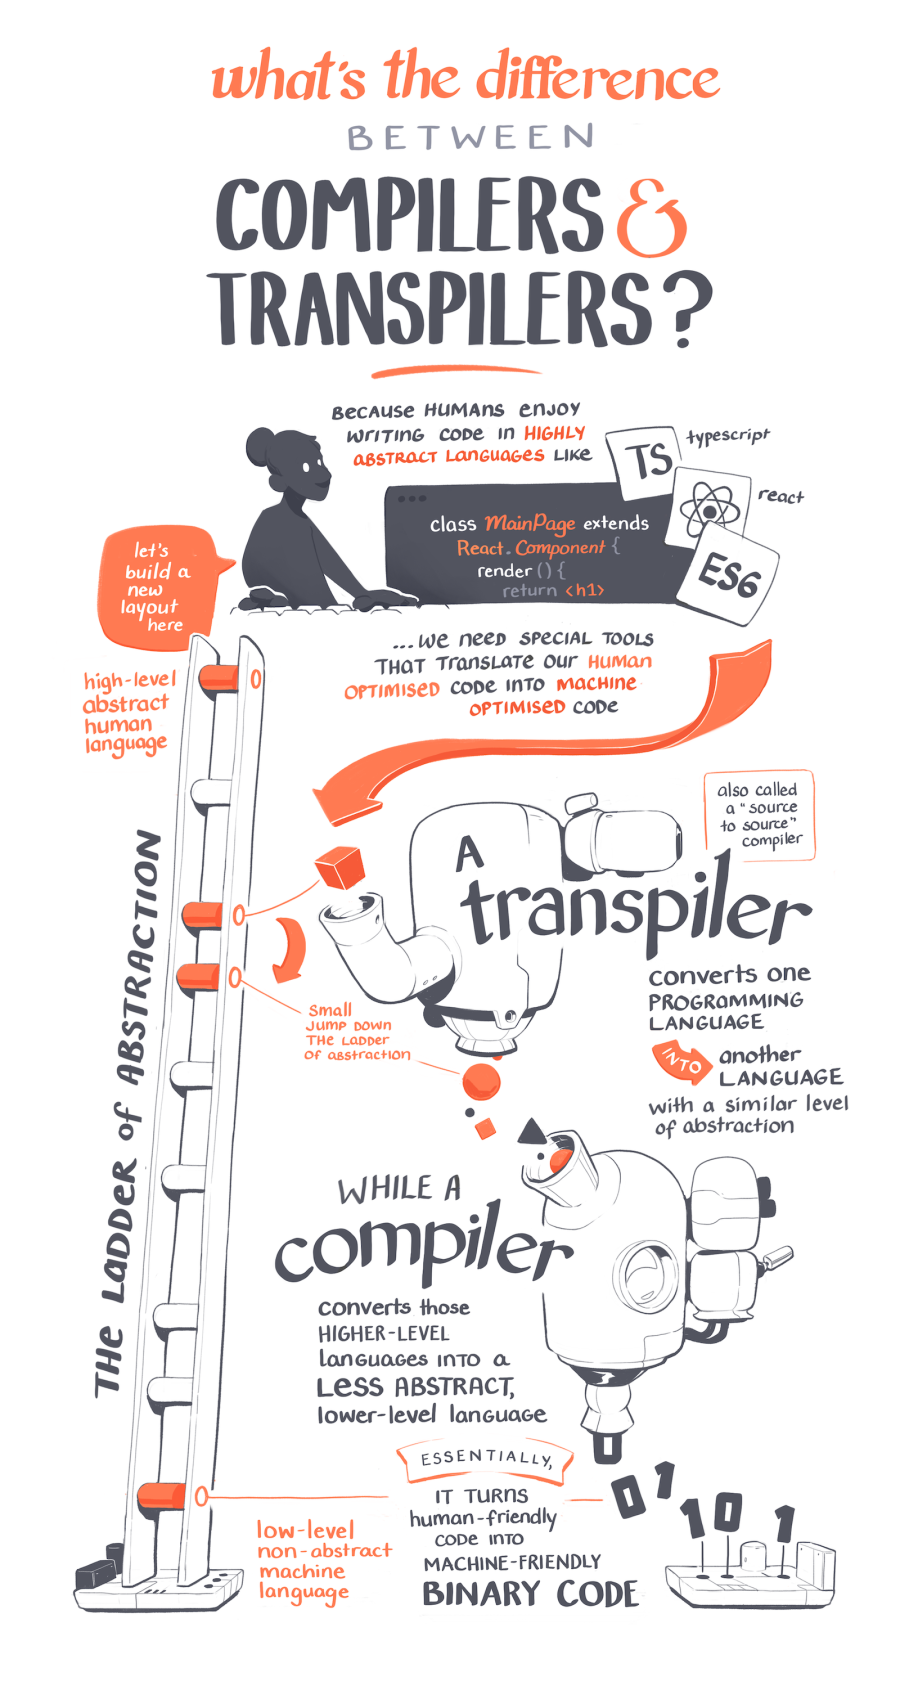 Compilers and Transpilers